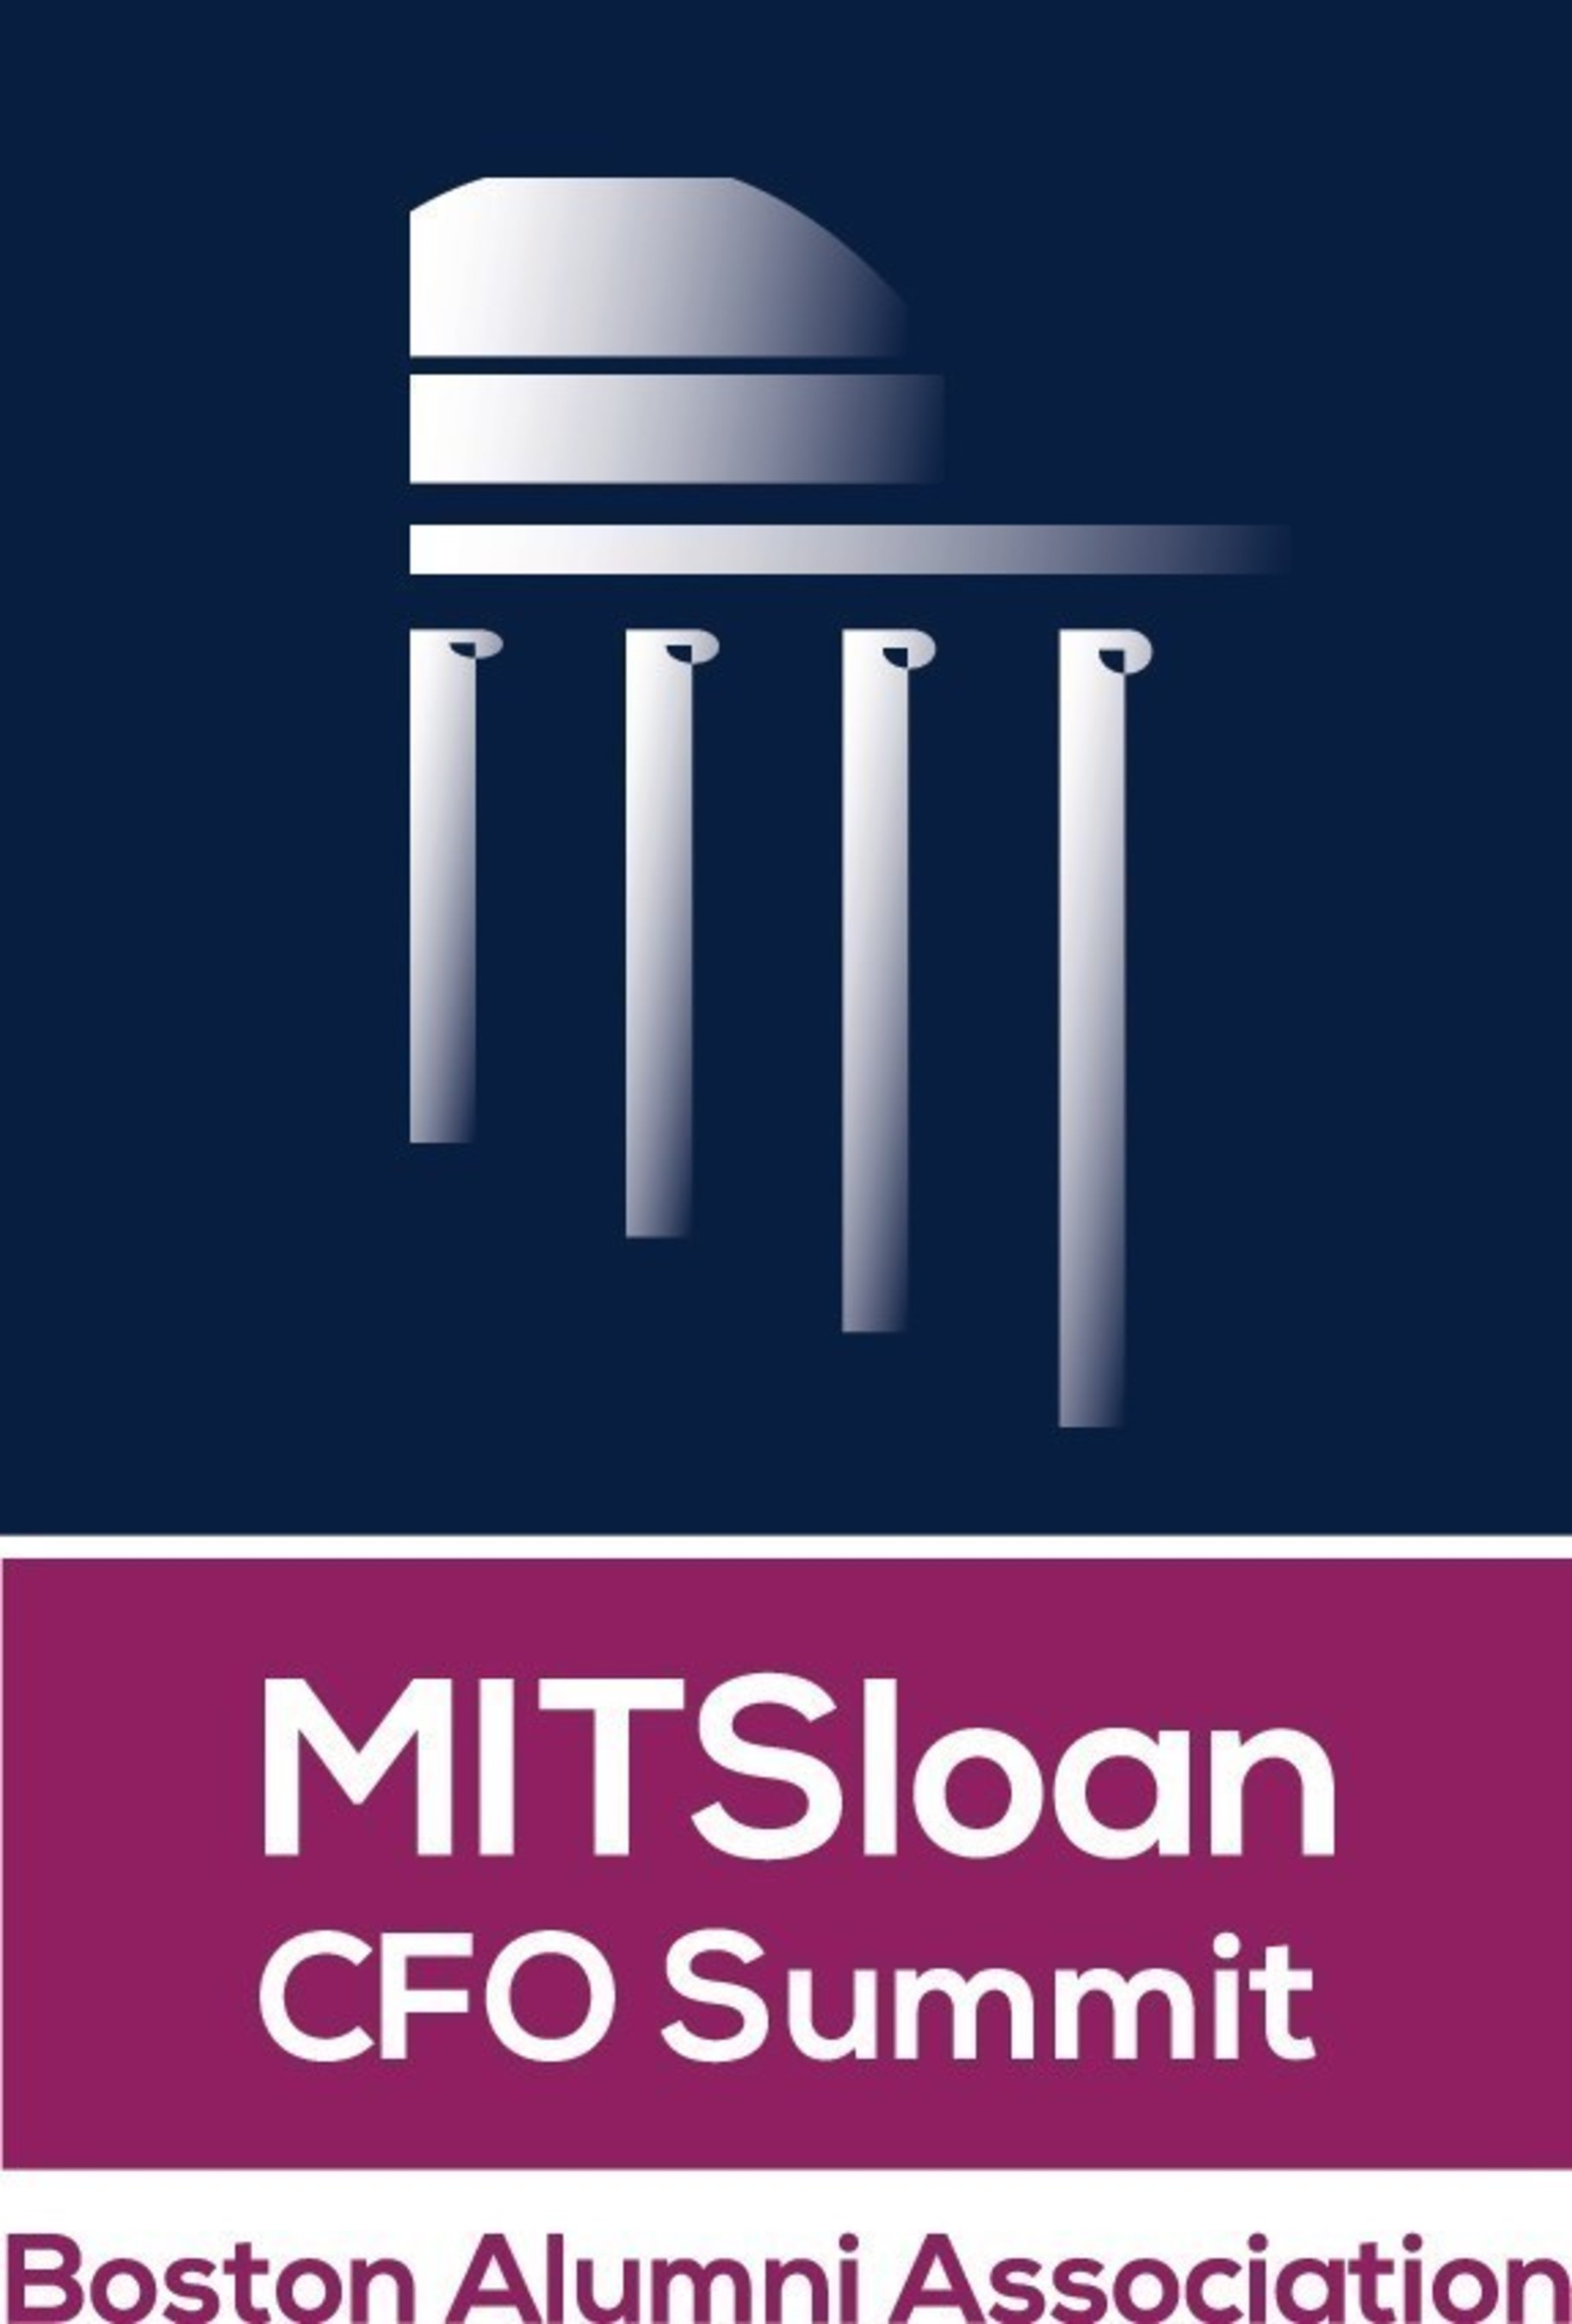 2016 MIT Sloan CFO Summit to be Held November 17 - 'Always On: The Digital CFO'